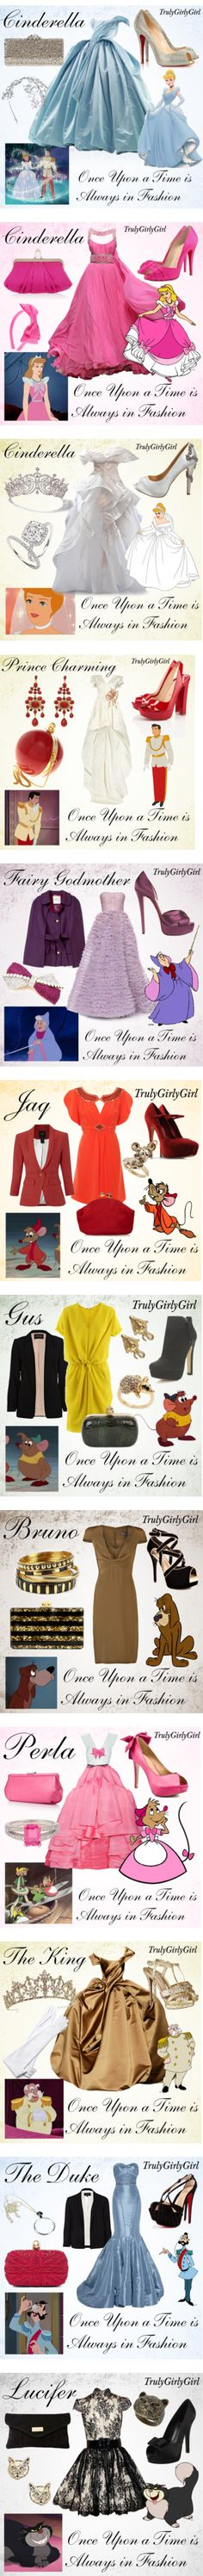 """Disney Style: Cinderella"" by trulygirlygirl ❤ liked on Polyvore"